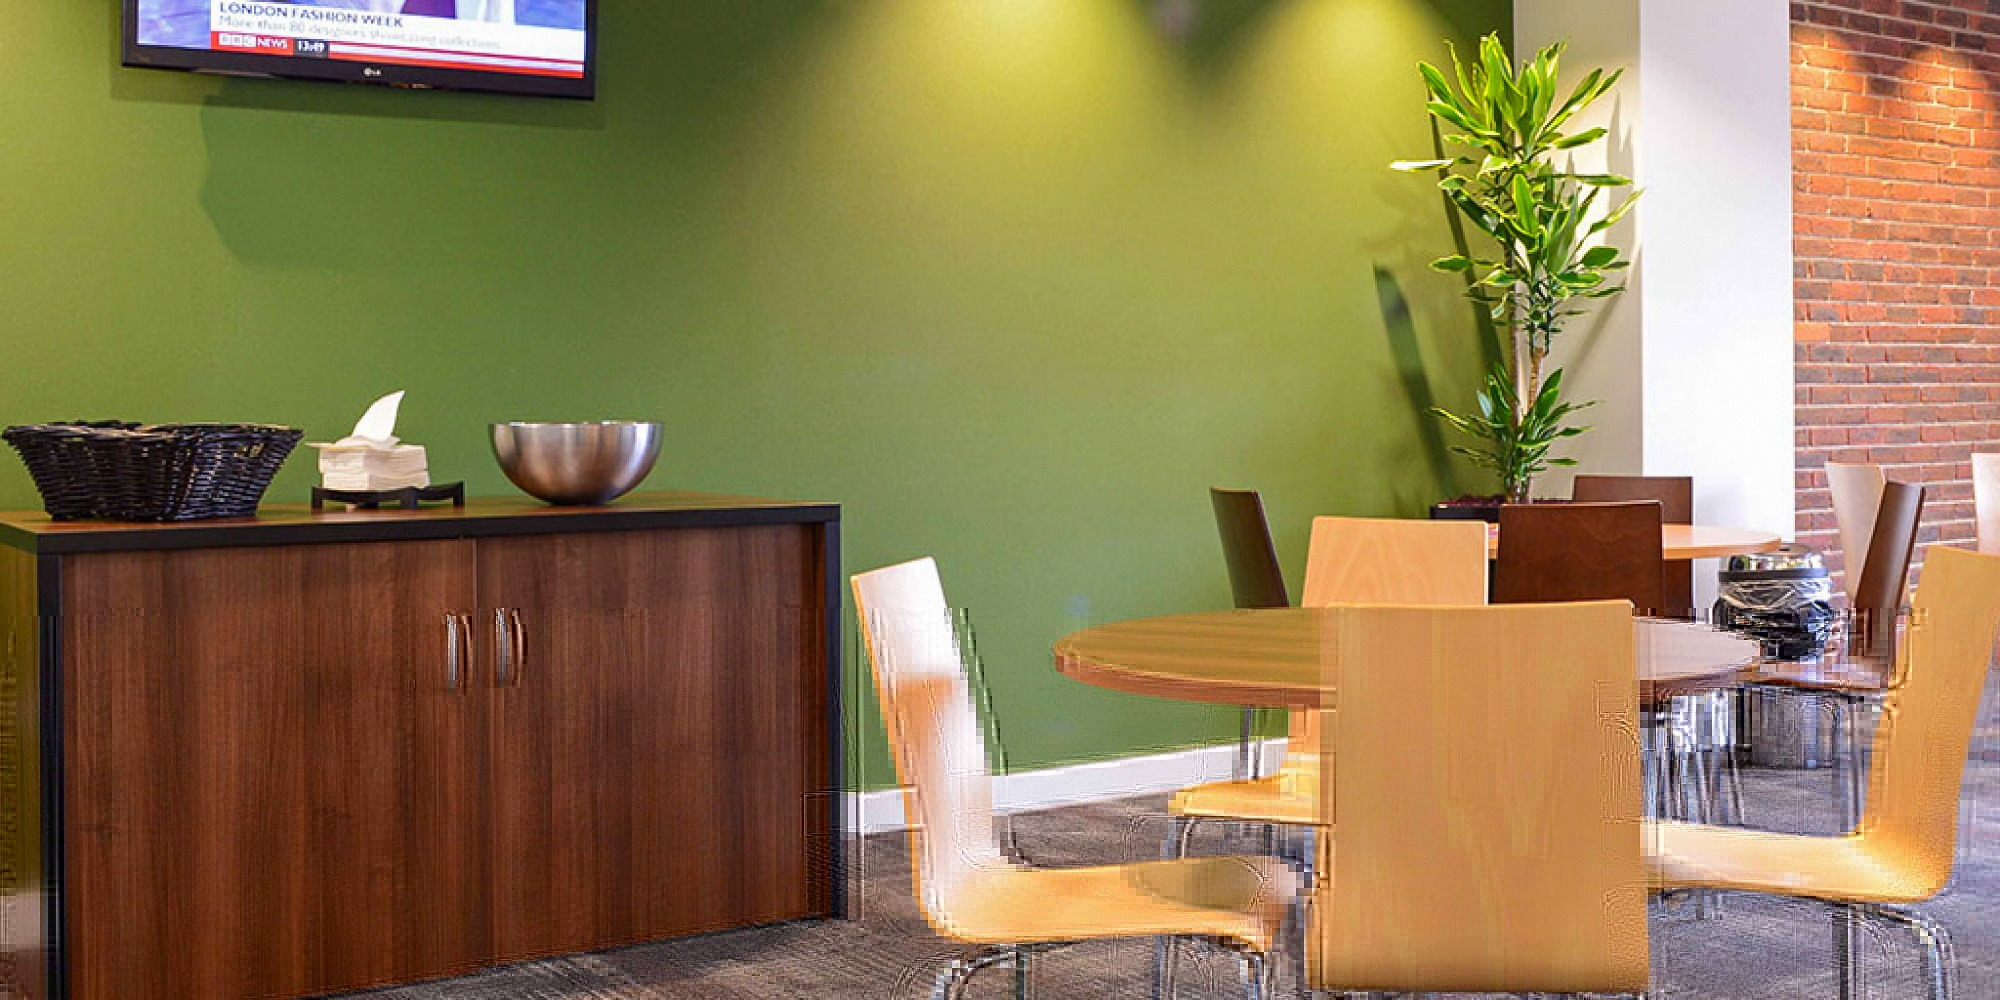 communal seating area with green wall